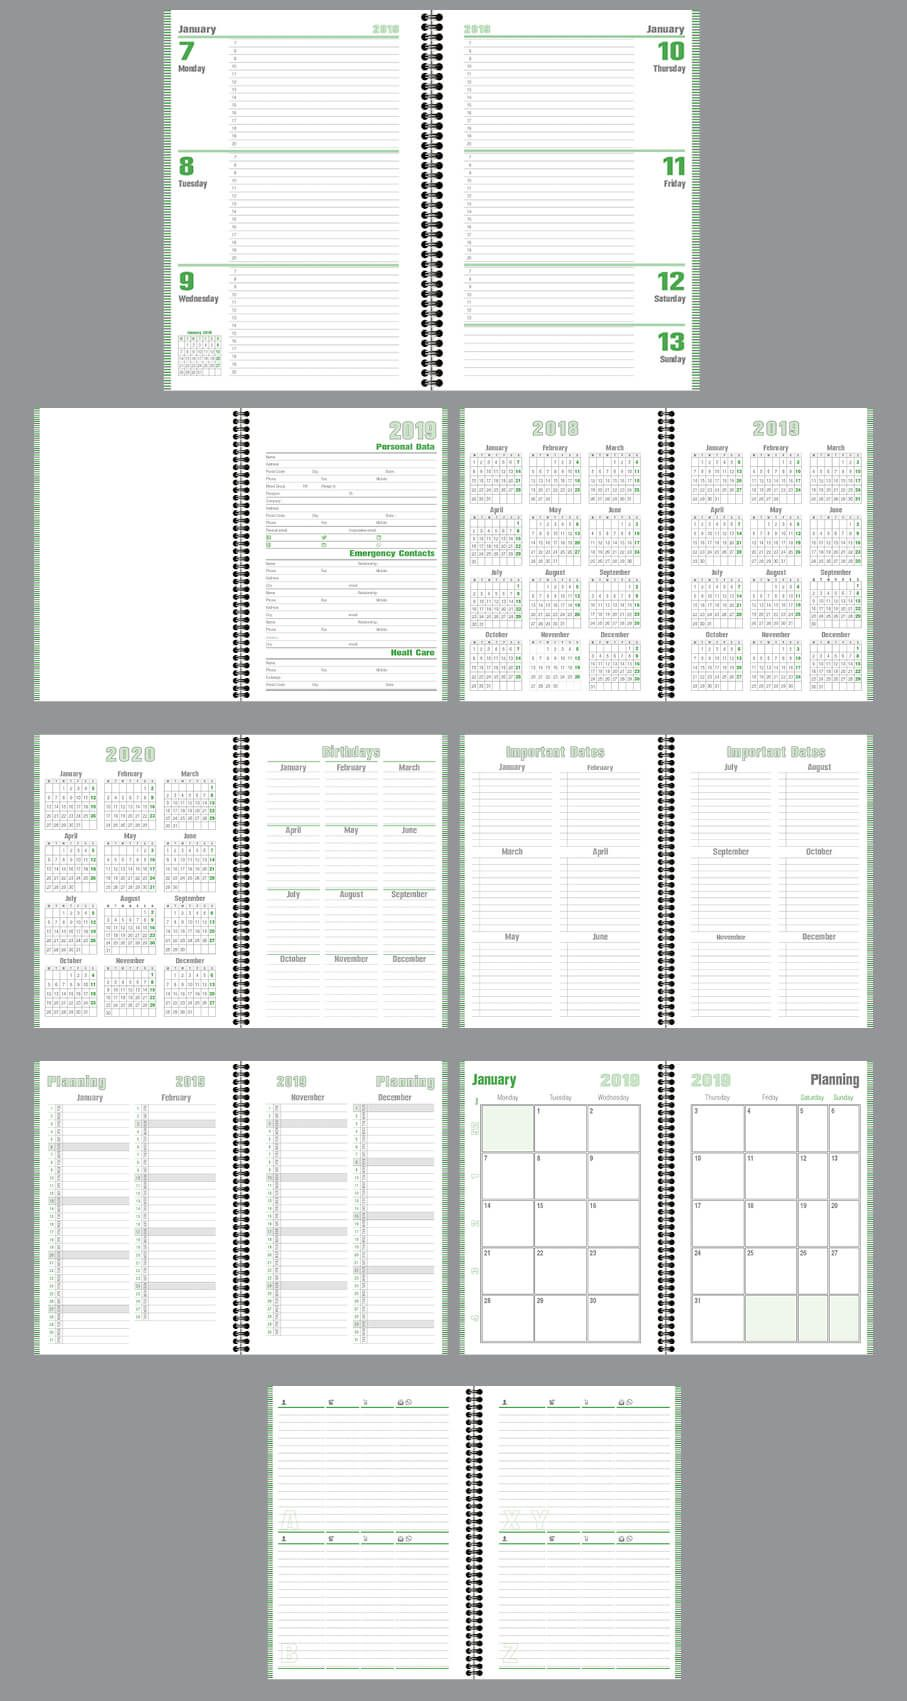 Daily Planner Agenda Indesign Template Fully Editable Model Atd53